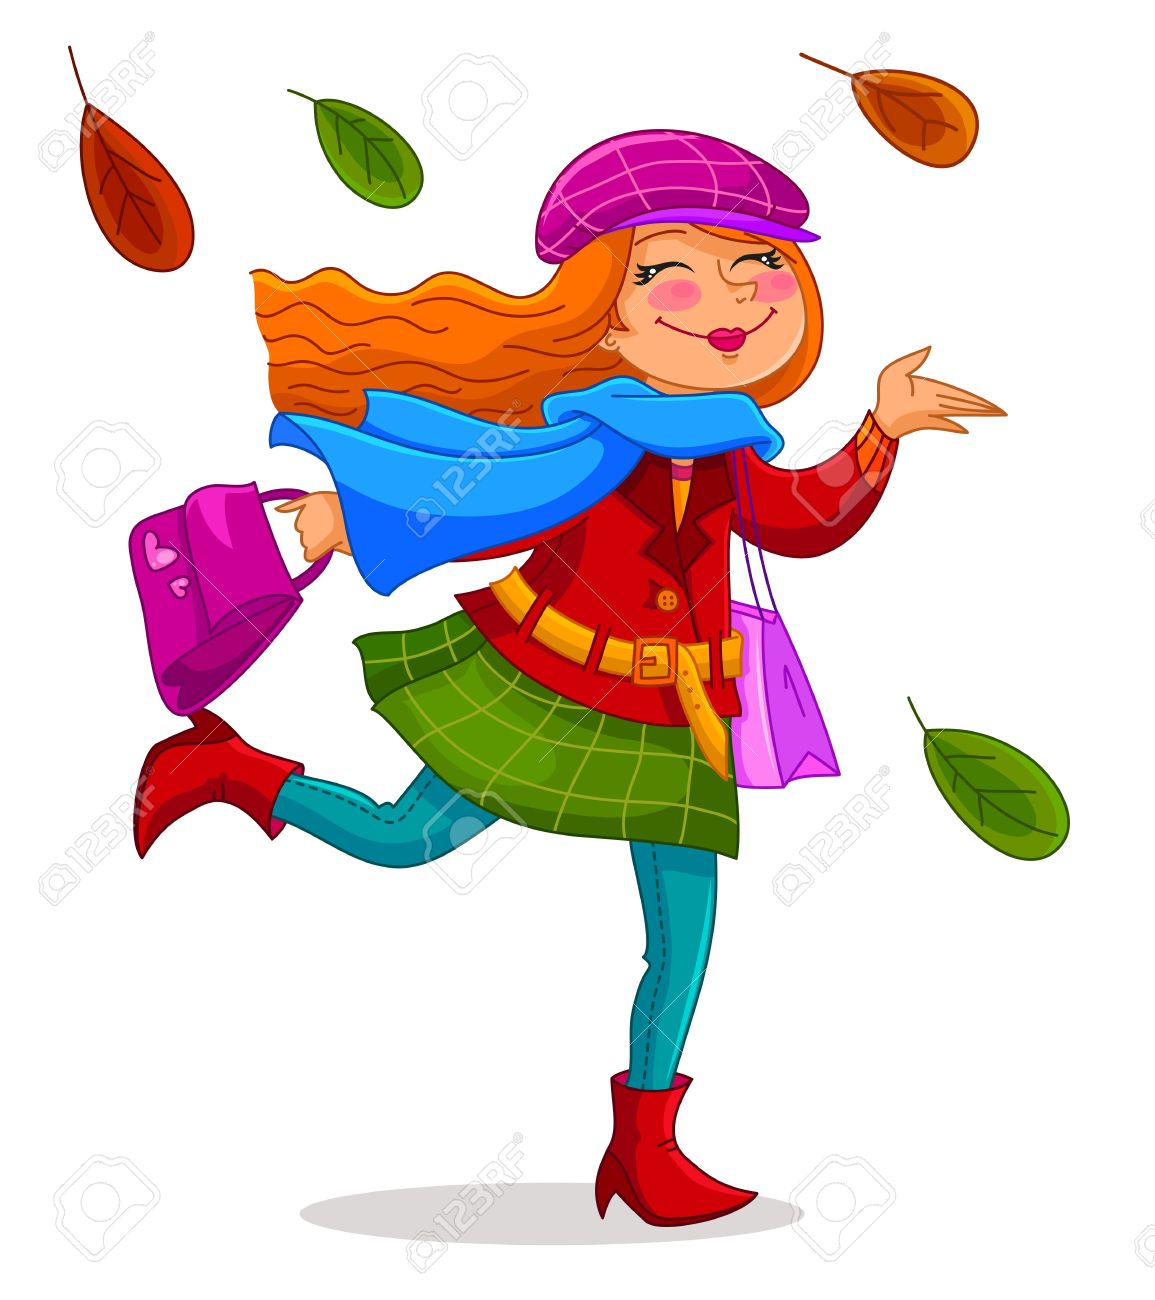 Happy Woman Carrying Shopping Bags Under Falling Autumn Leaves.